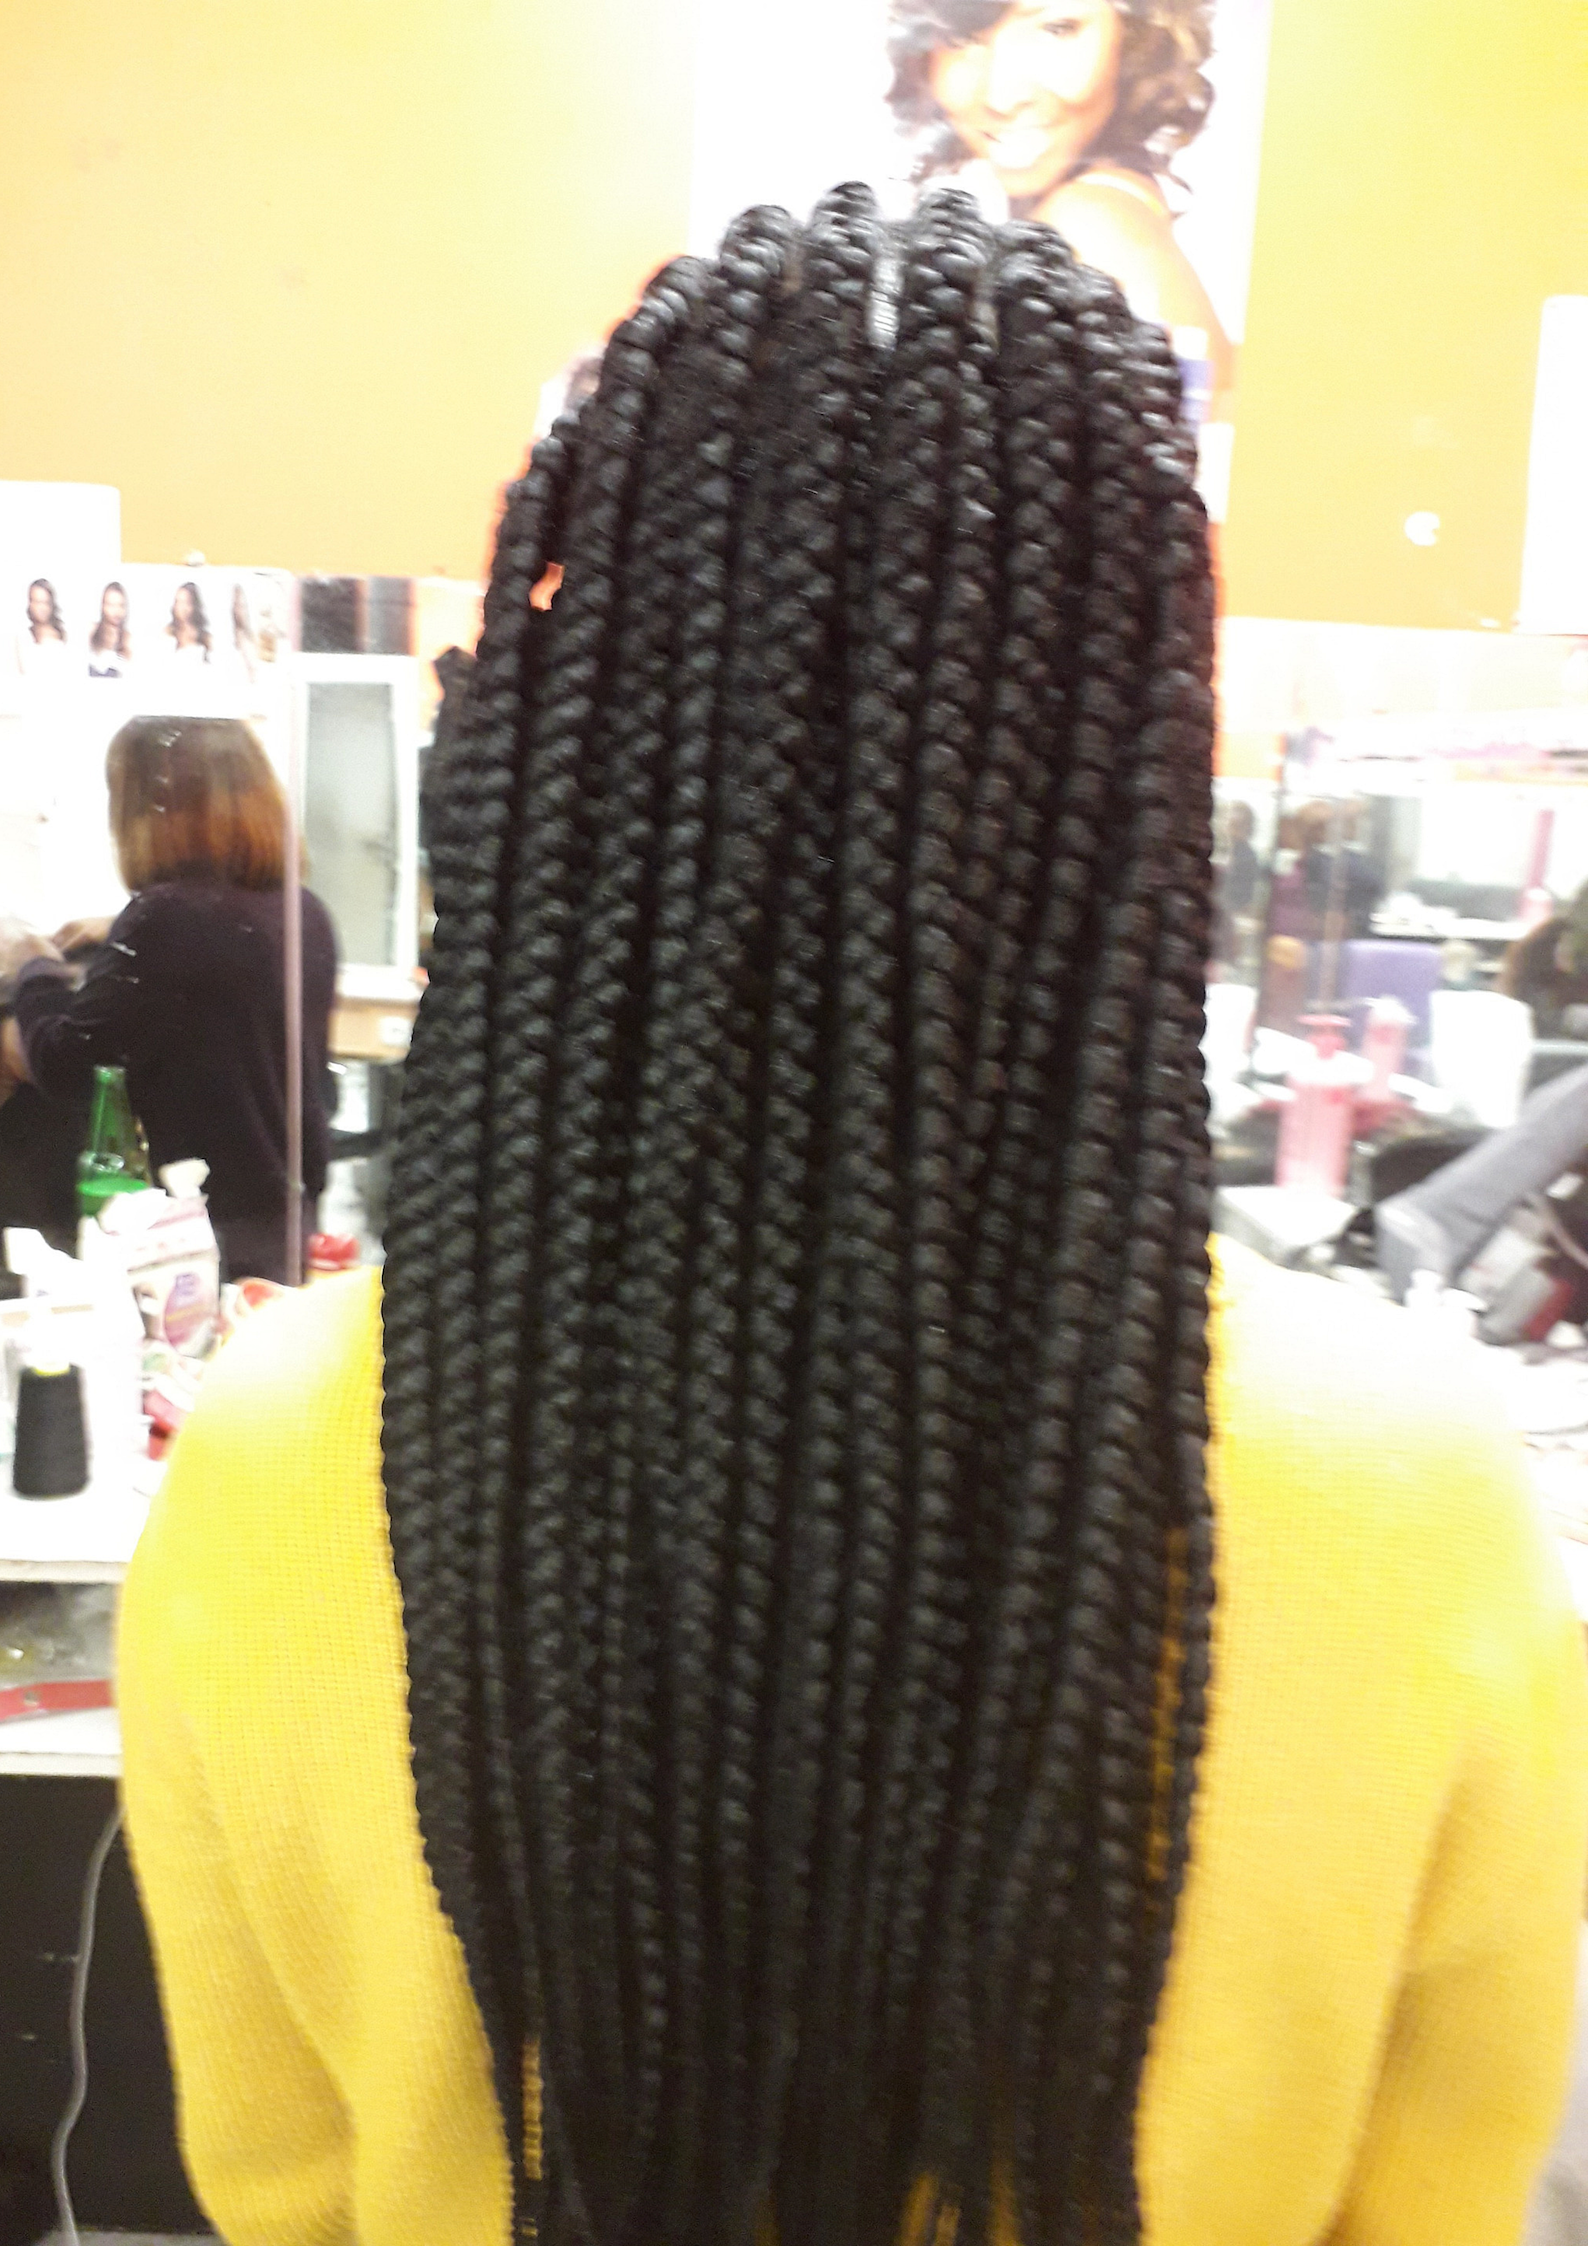 salon de coiffure afro tresse tresses box braids crochet braids vanilles tissages paris 75 77 78 91 92 93 94 95 XIBIULOO